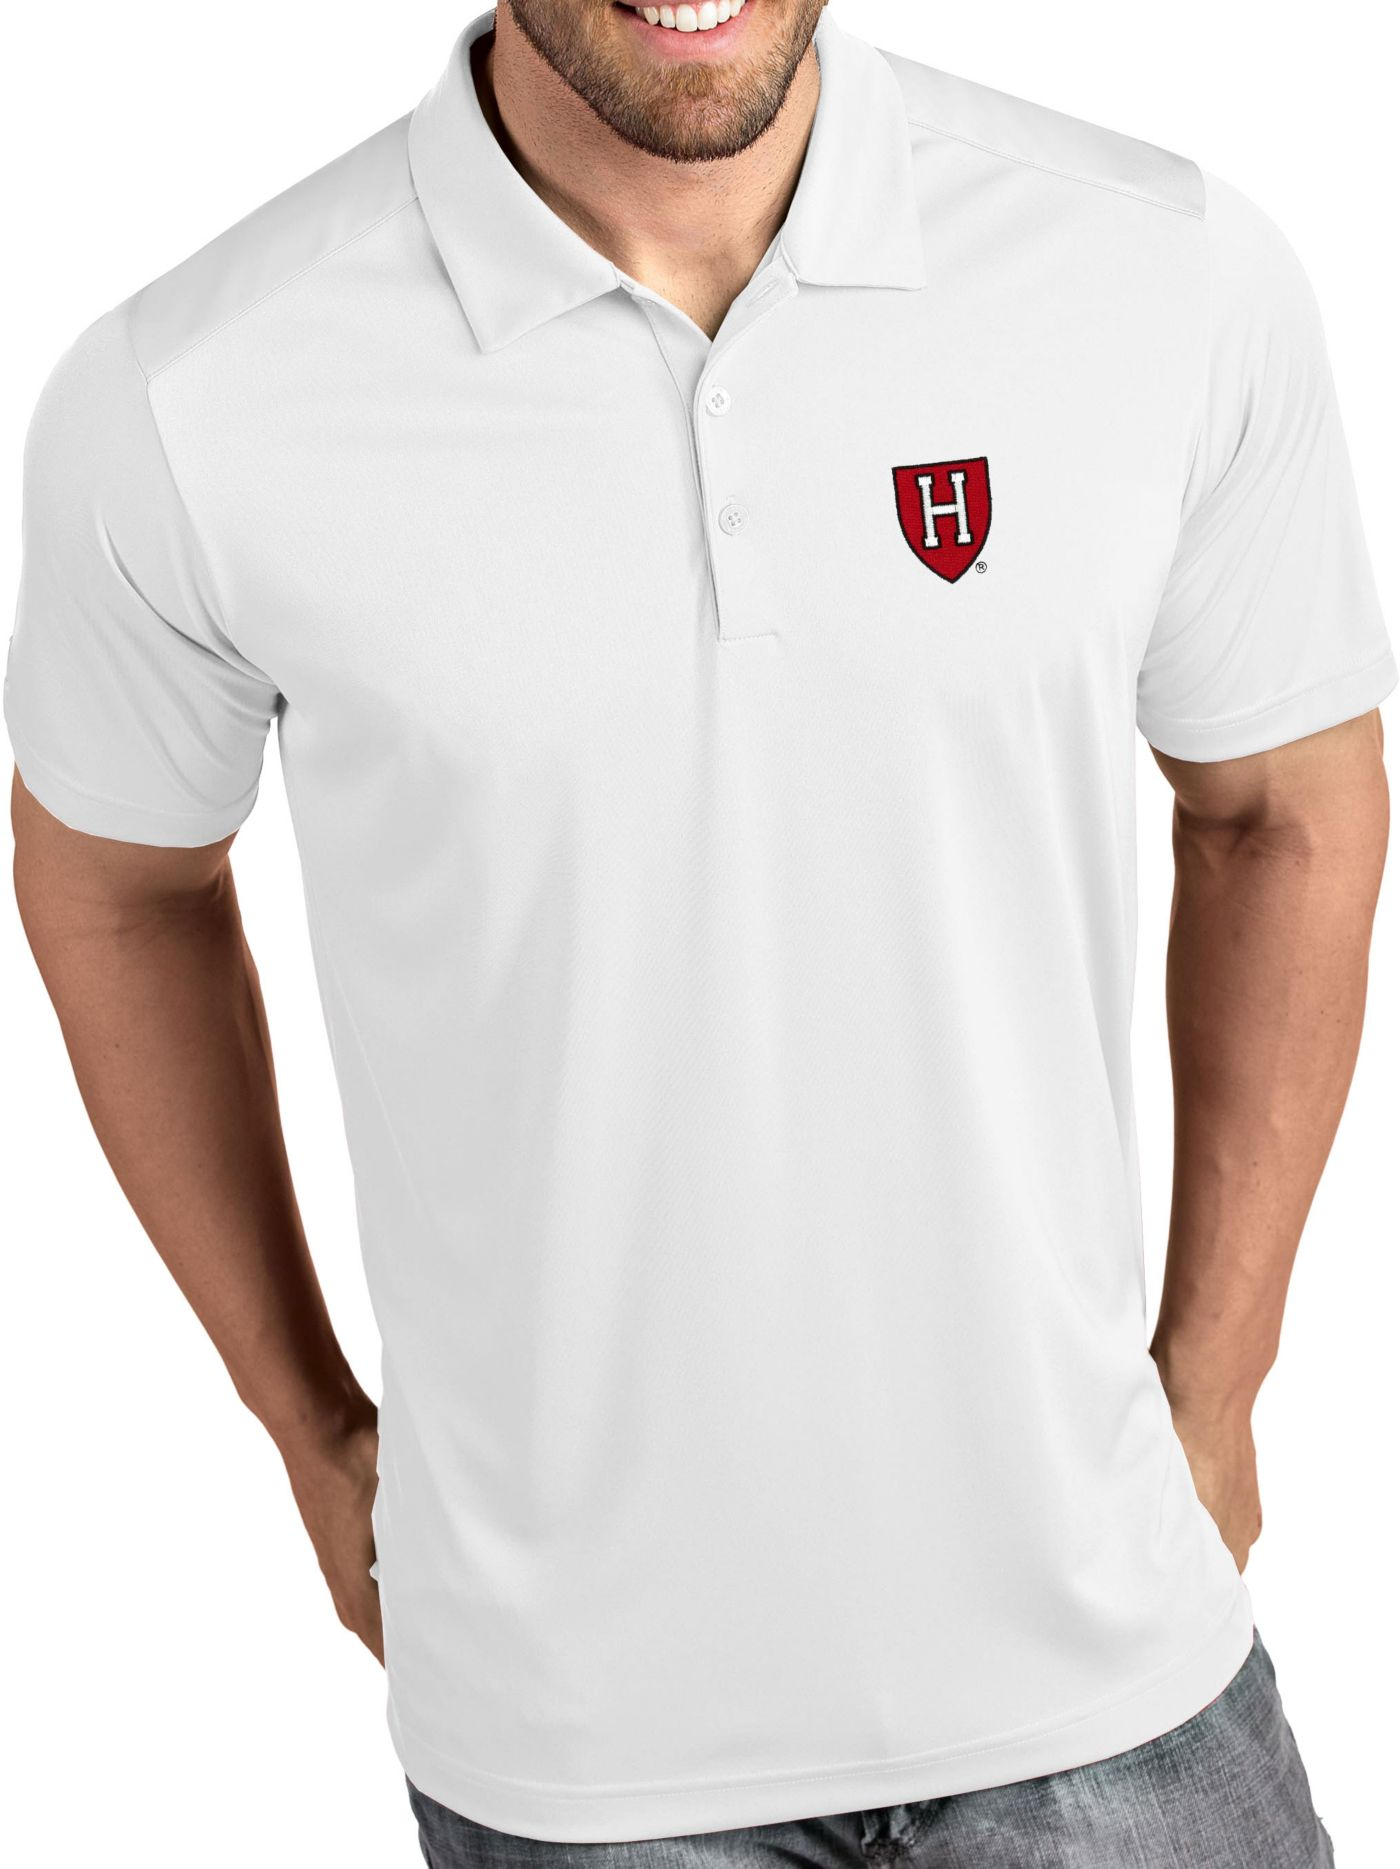 Antigua Men's Harvard Crimson Tribute Performance White Polo